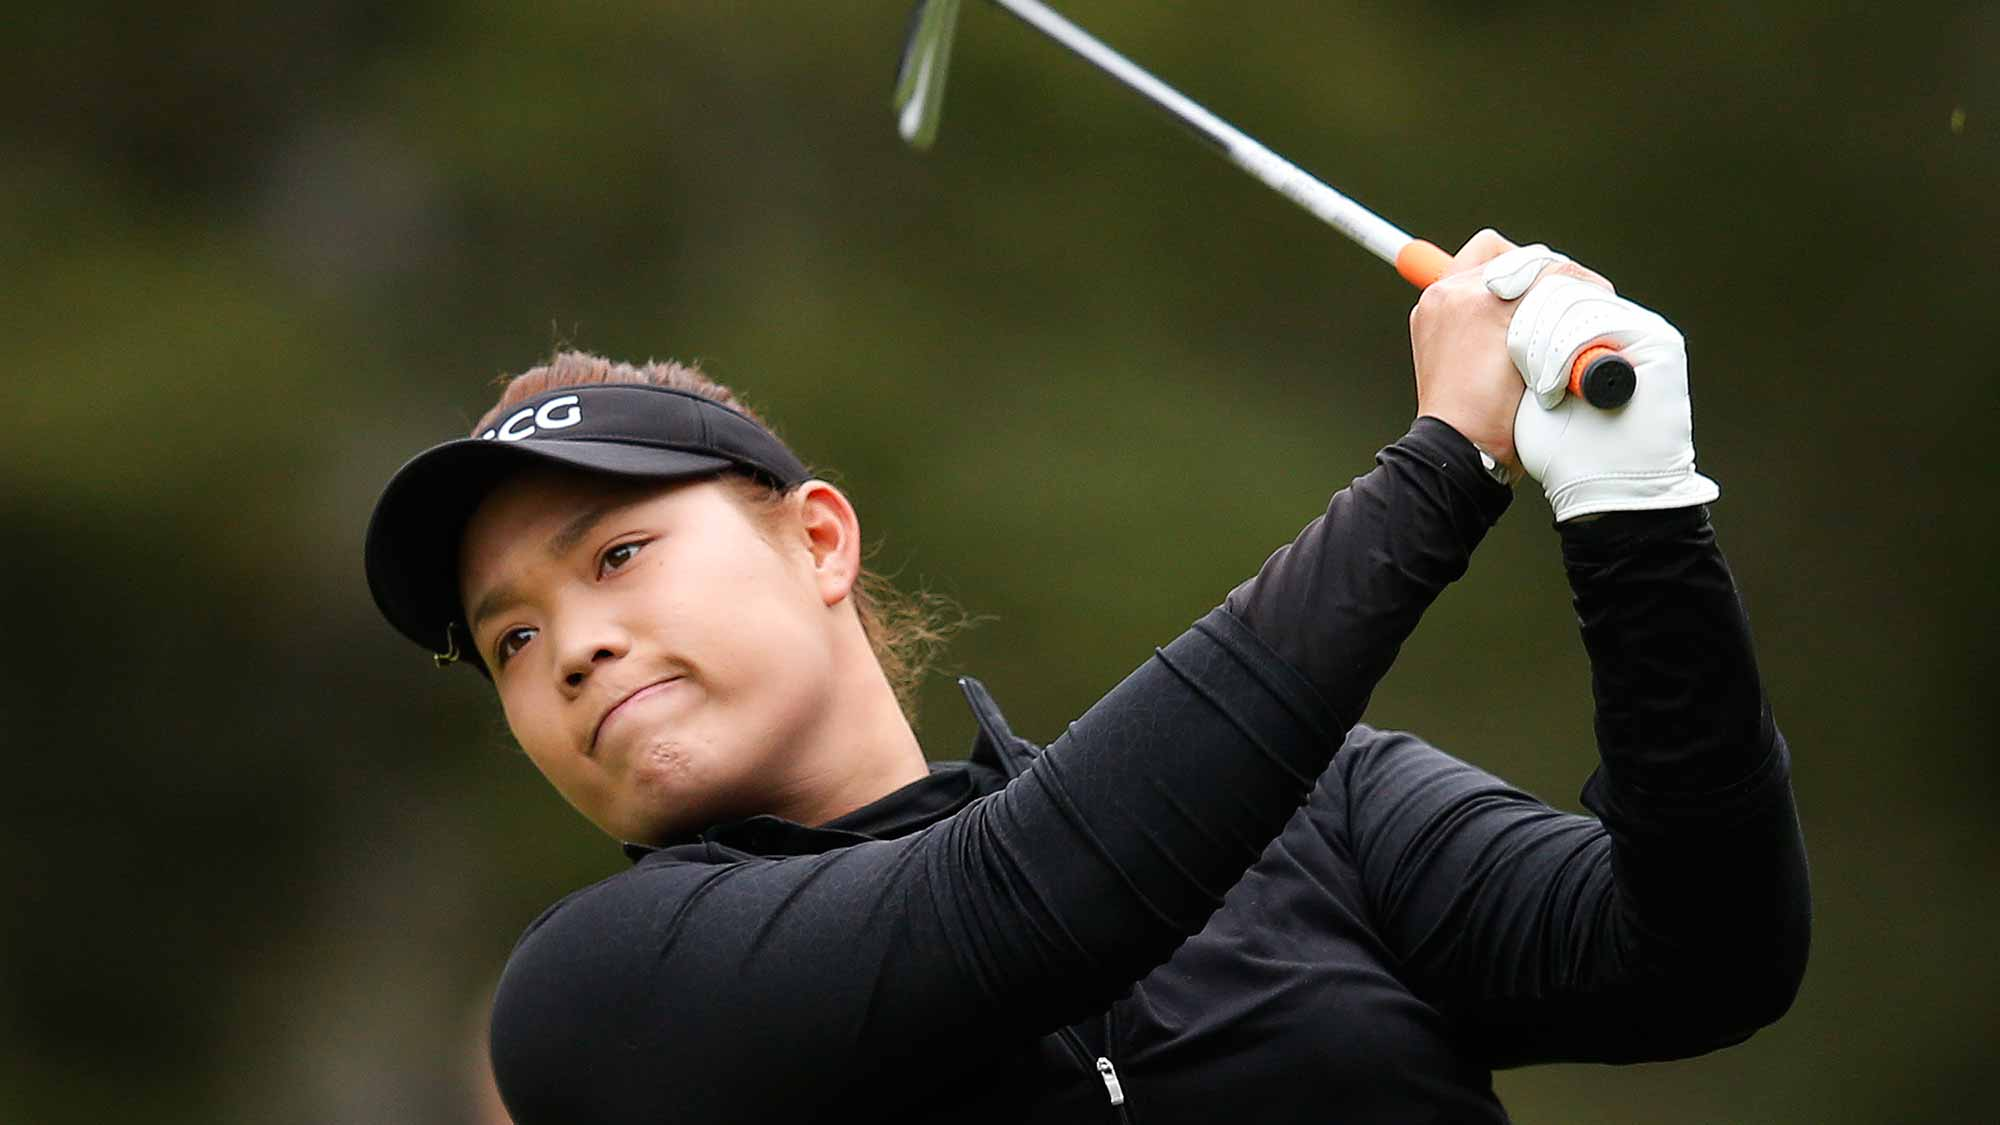 Ariya Jutanugarn of Thailand tees off on the second hole during the final round of the Canadian Pacific Women's Open at Priddis Greens Golf and Country Club